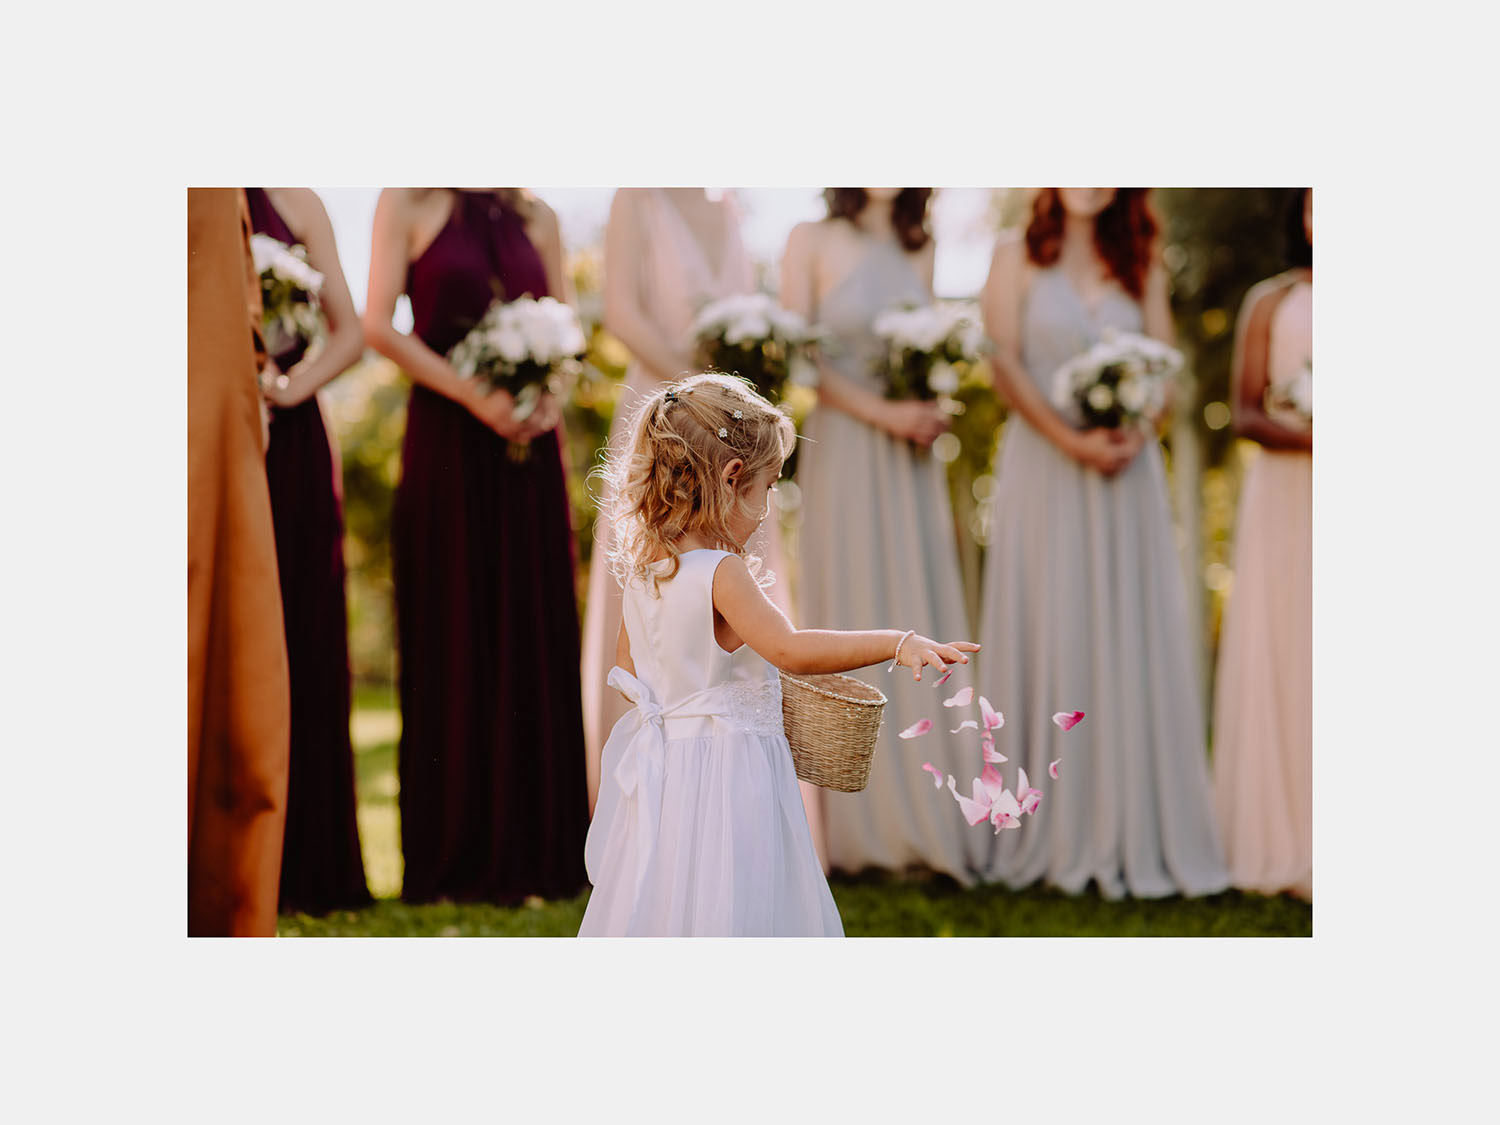 Unbria wedding photographer flower girl